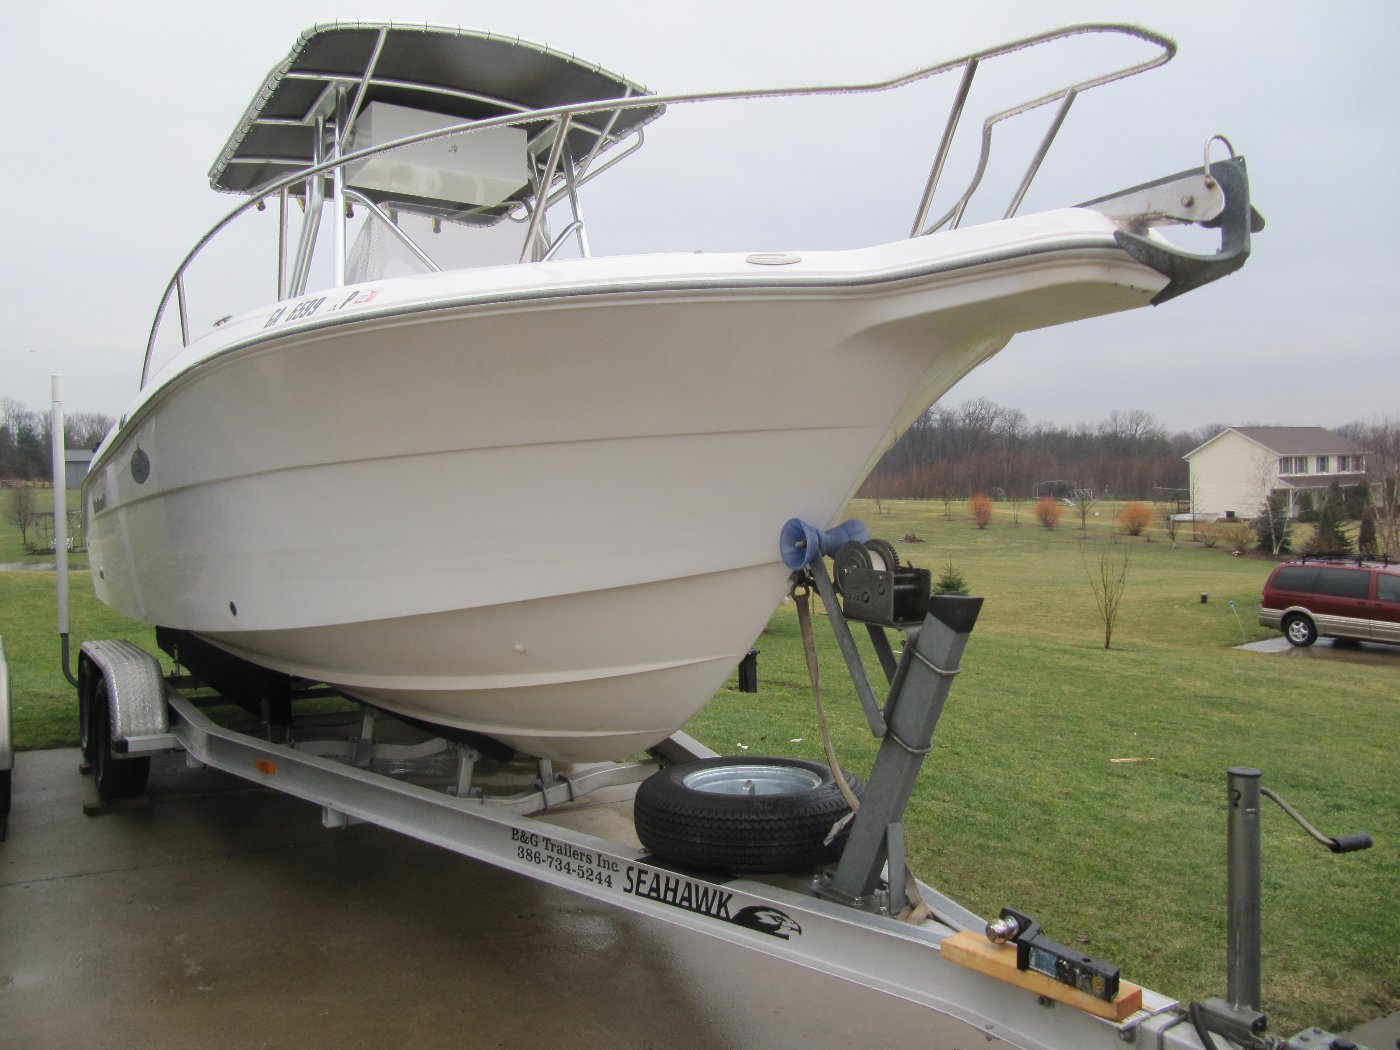 FOR SALE - Wellcraft 230 Fisherman Center Console Fishing Boat